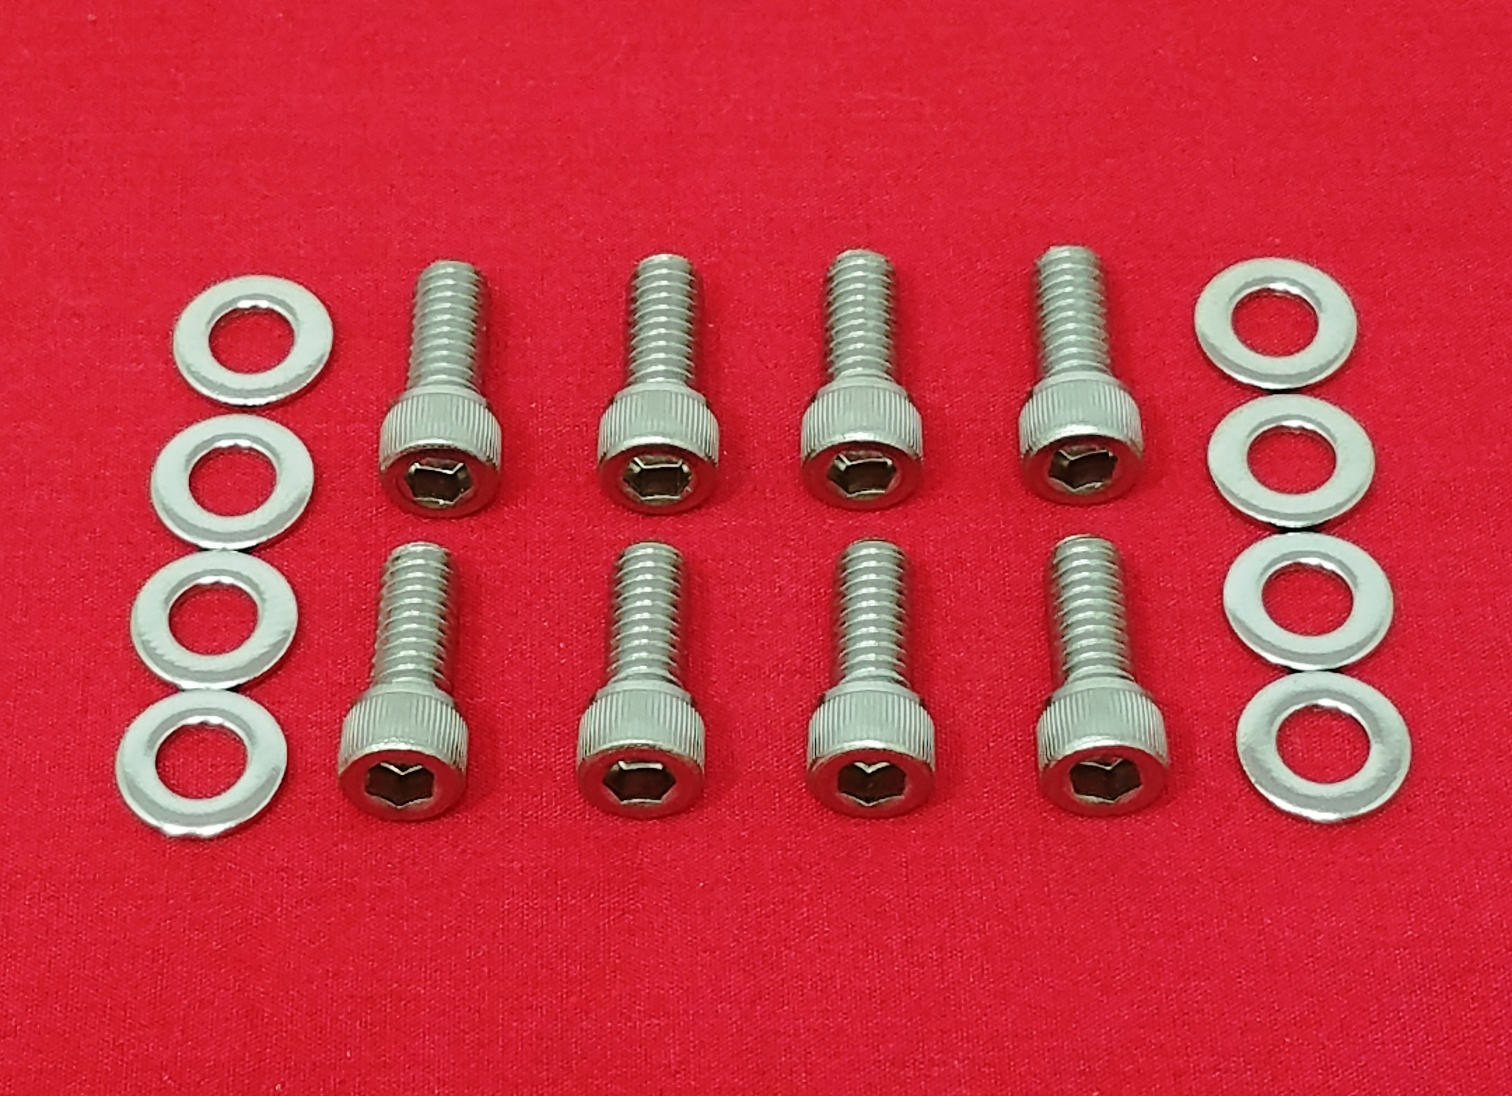 Car & Truck Exhausts & Exhaust Parts SBC EXHAUST MANIFOLD BOLTS RAM HORNS STAINLESS SMALL BLOCK CHEVY 283 327 350 Auto Parts & Accessories